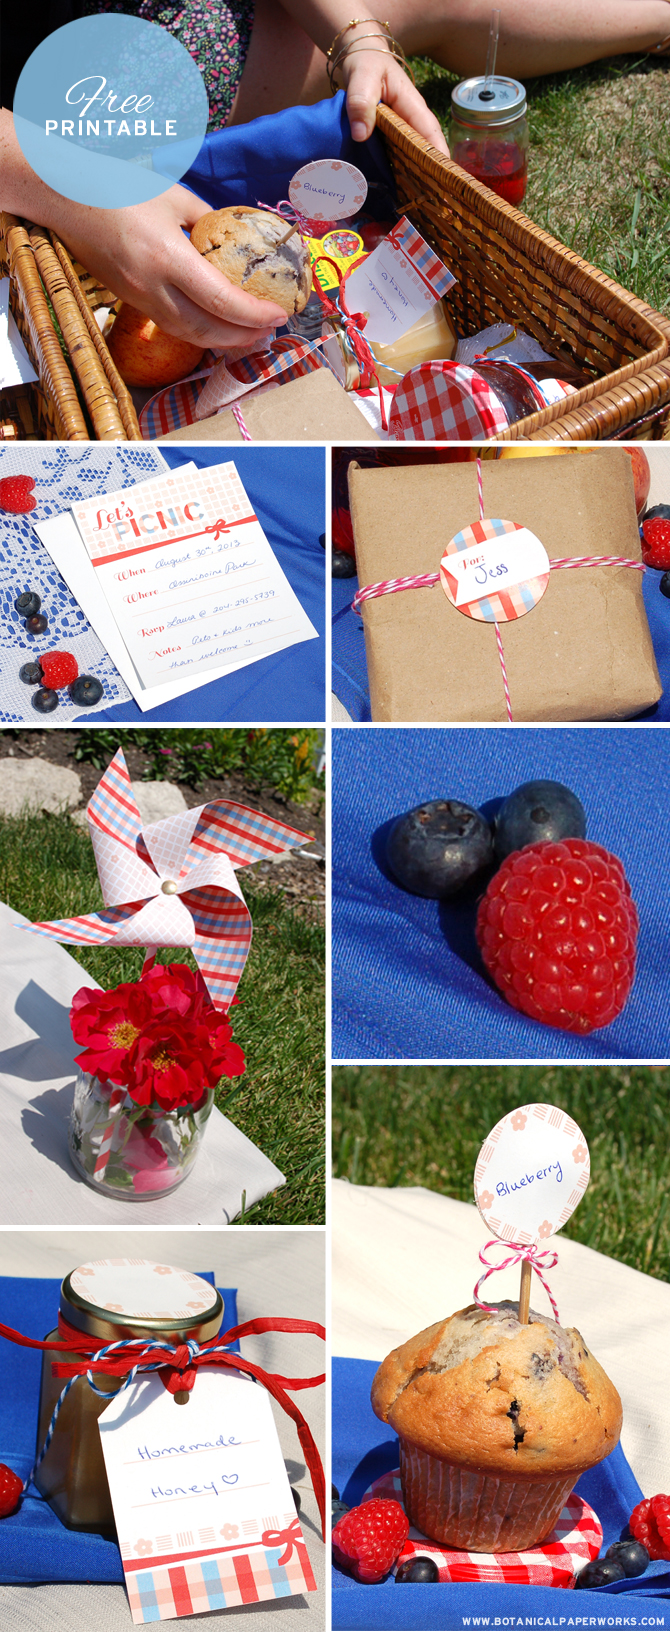 Love all the fun pieces this Picnic Free Printable from Botanical PaperWorks includes - super cute!